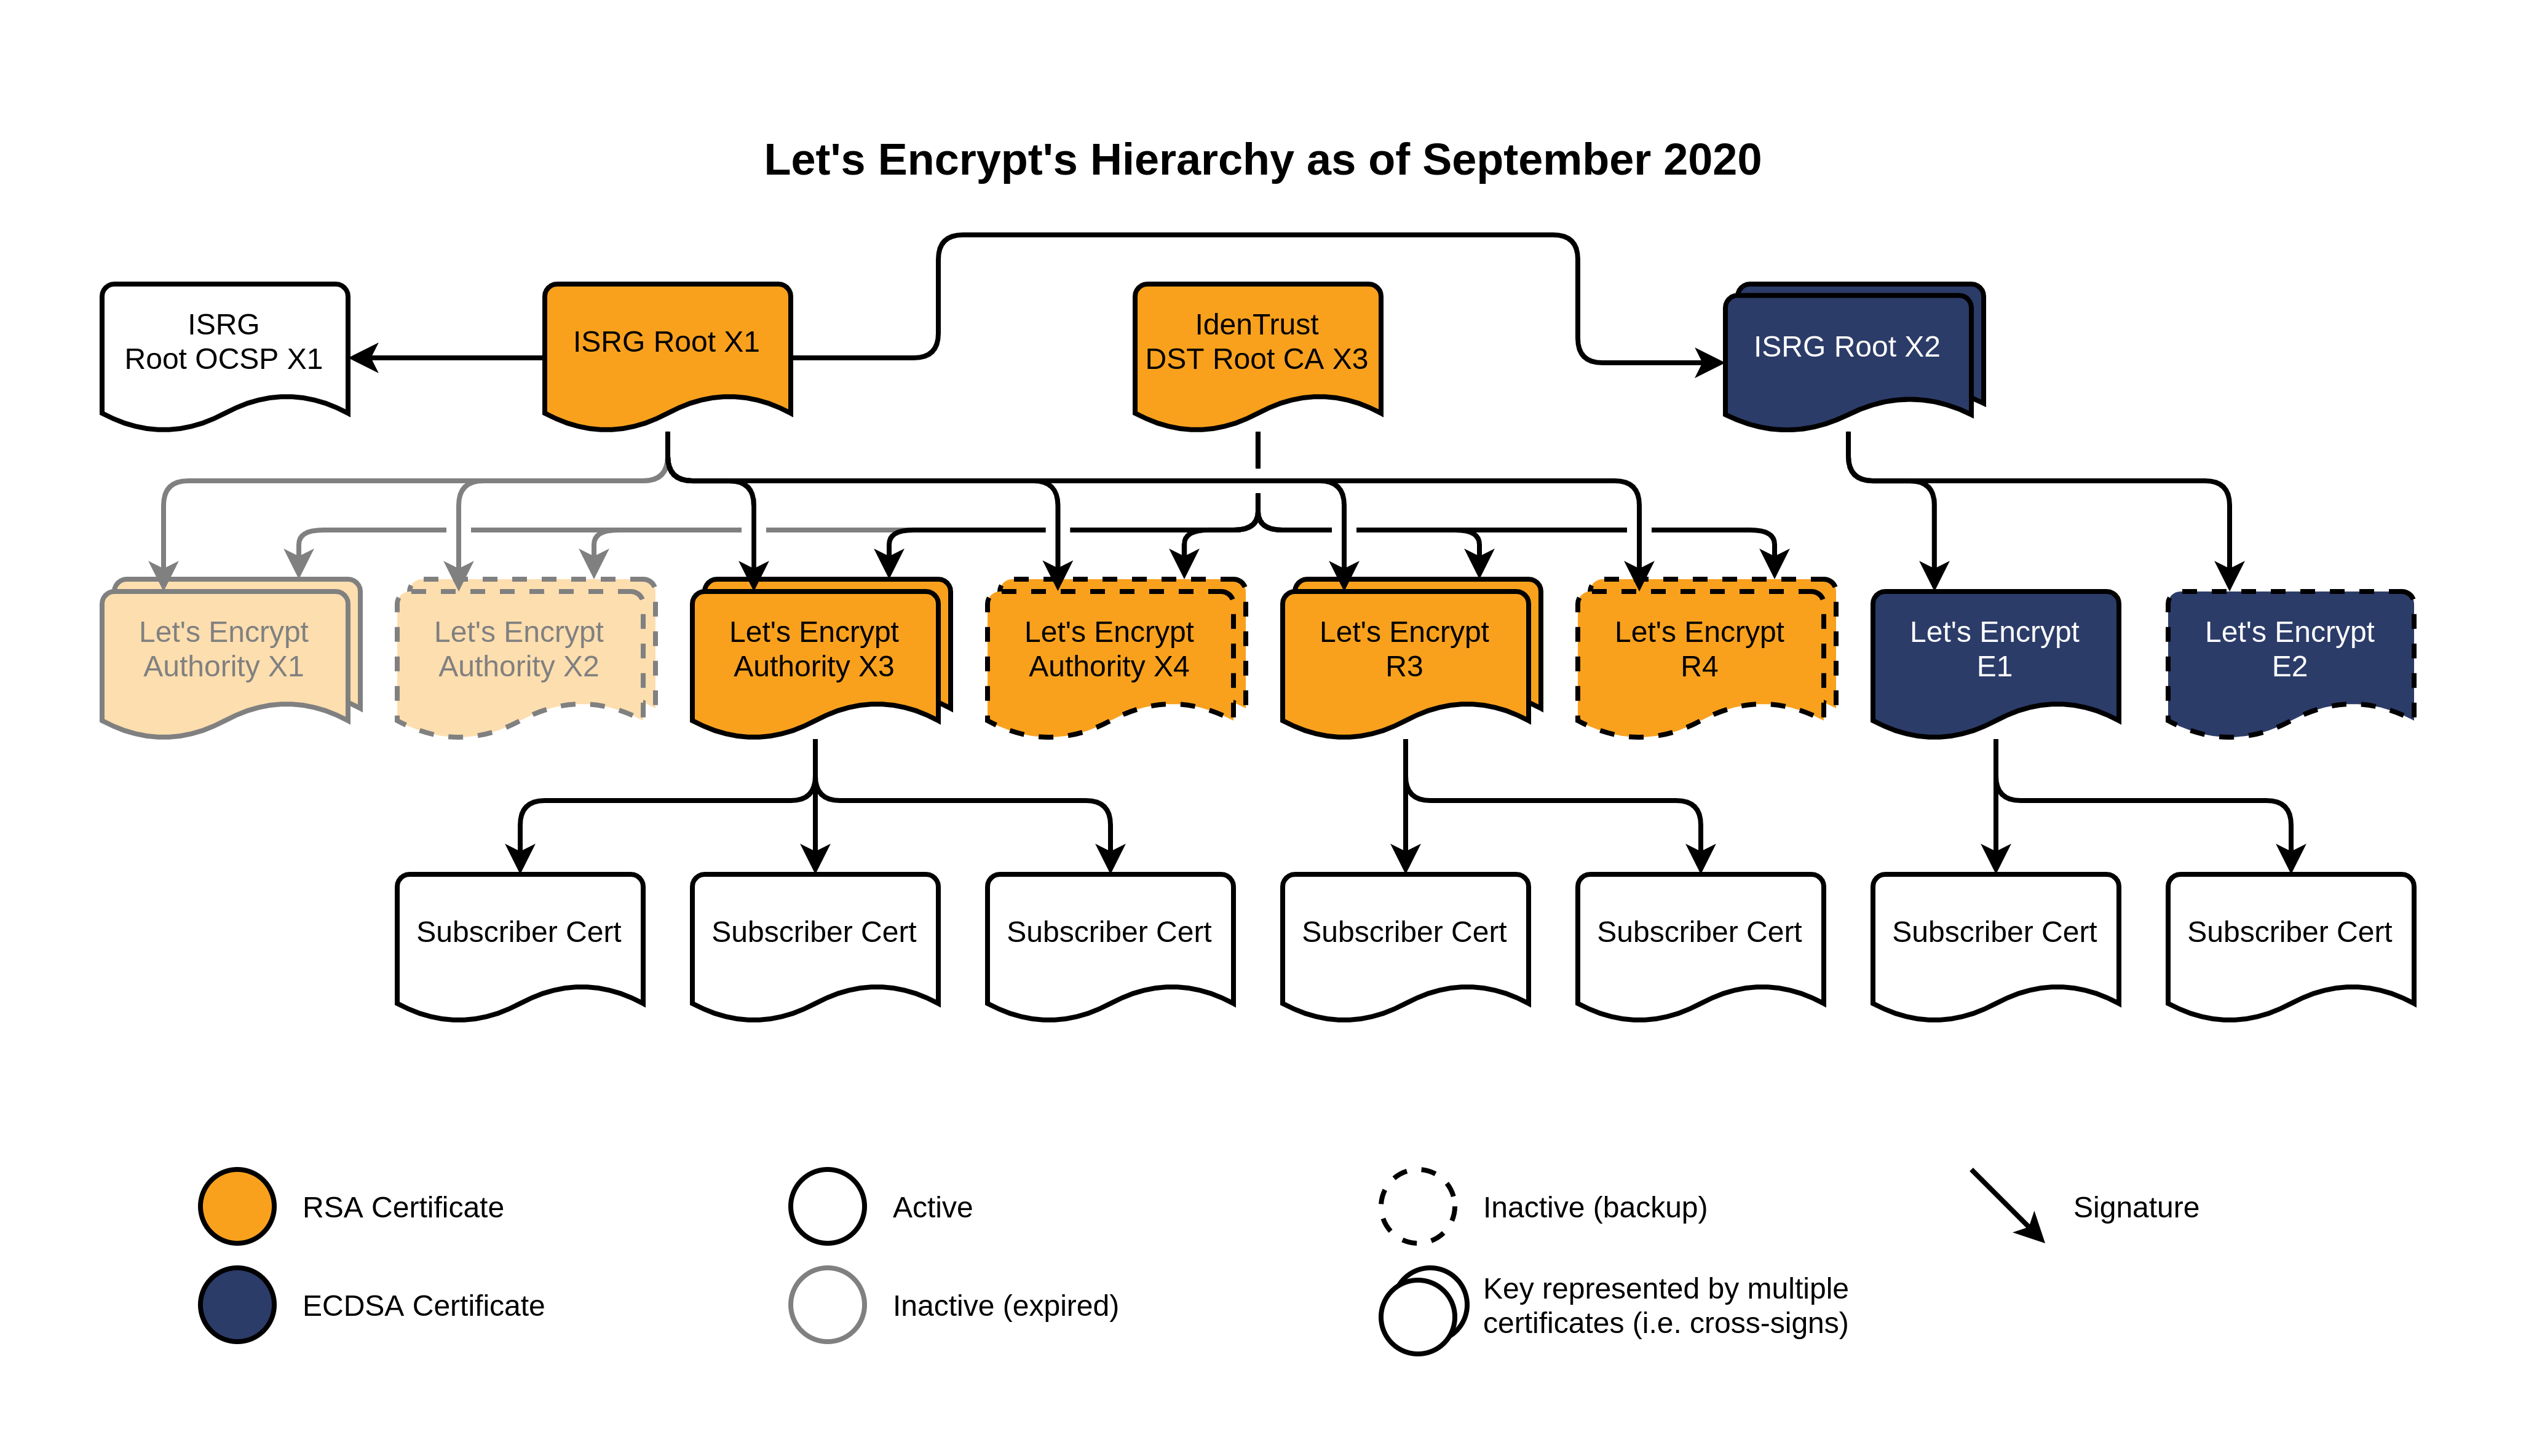 Let's Encrypt's hierarchy as of September 2020